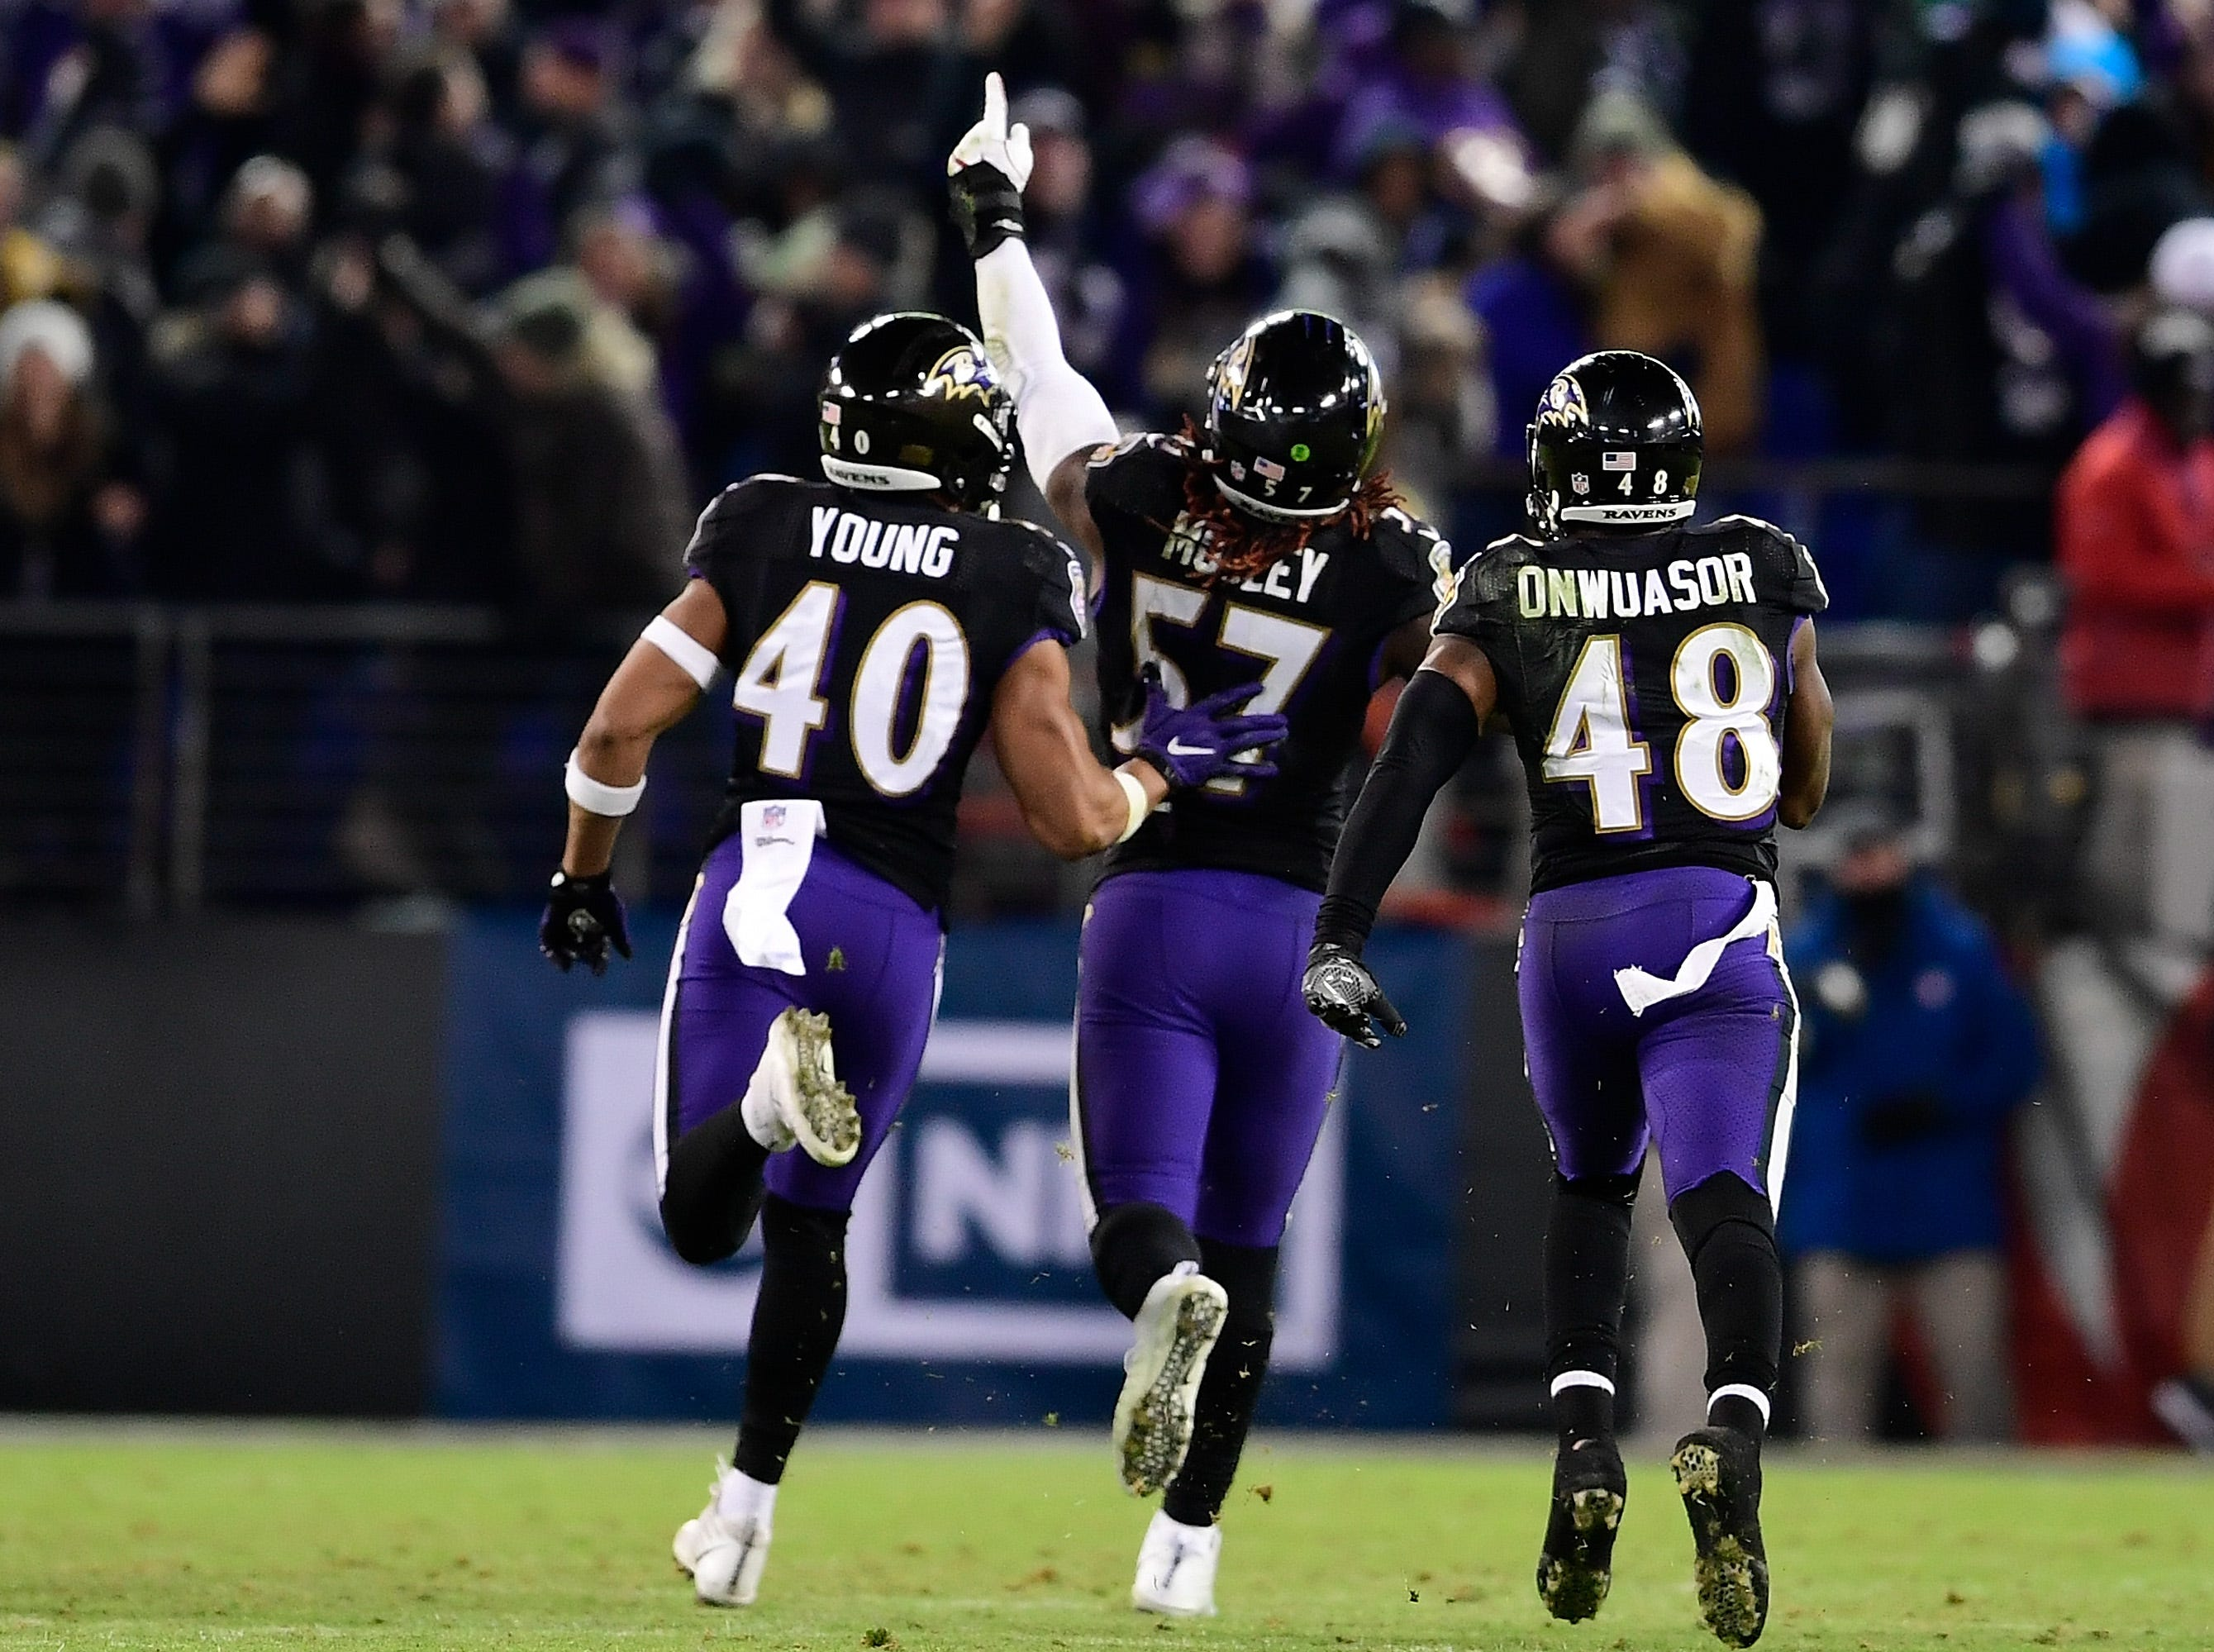 Dec. 30: Baltimore Ravens linebacker C.J. Mosley (57) celebrates with teammates after intercepting Cleveland Browns quarterback Baker Mayfield to seal the game and the AFC North title.